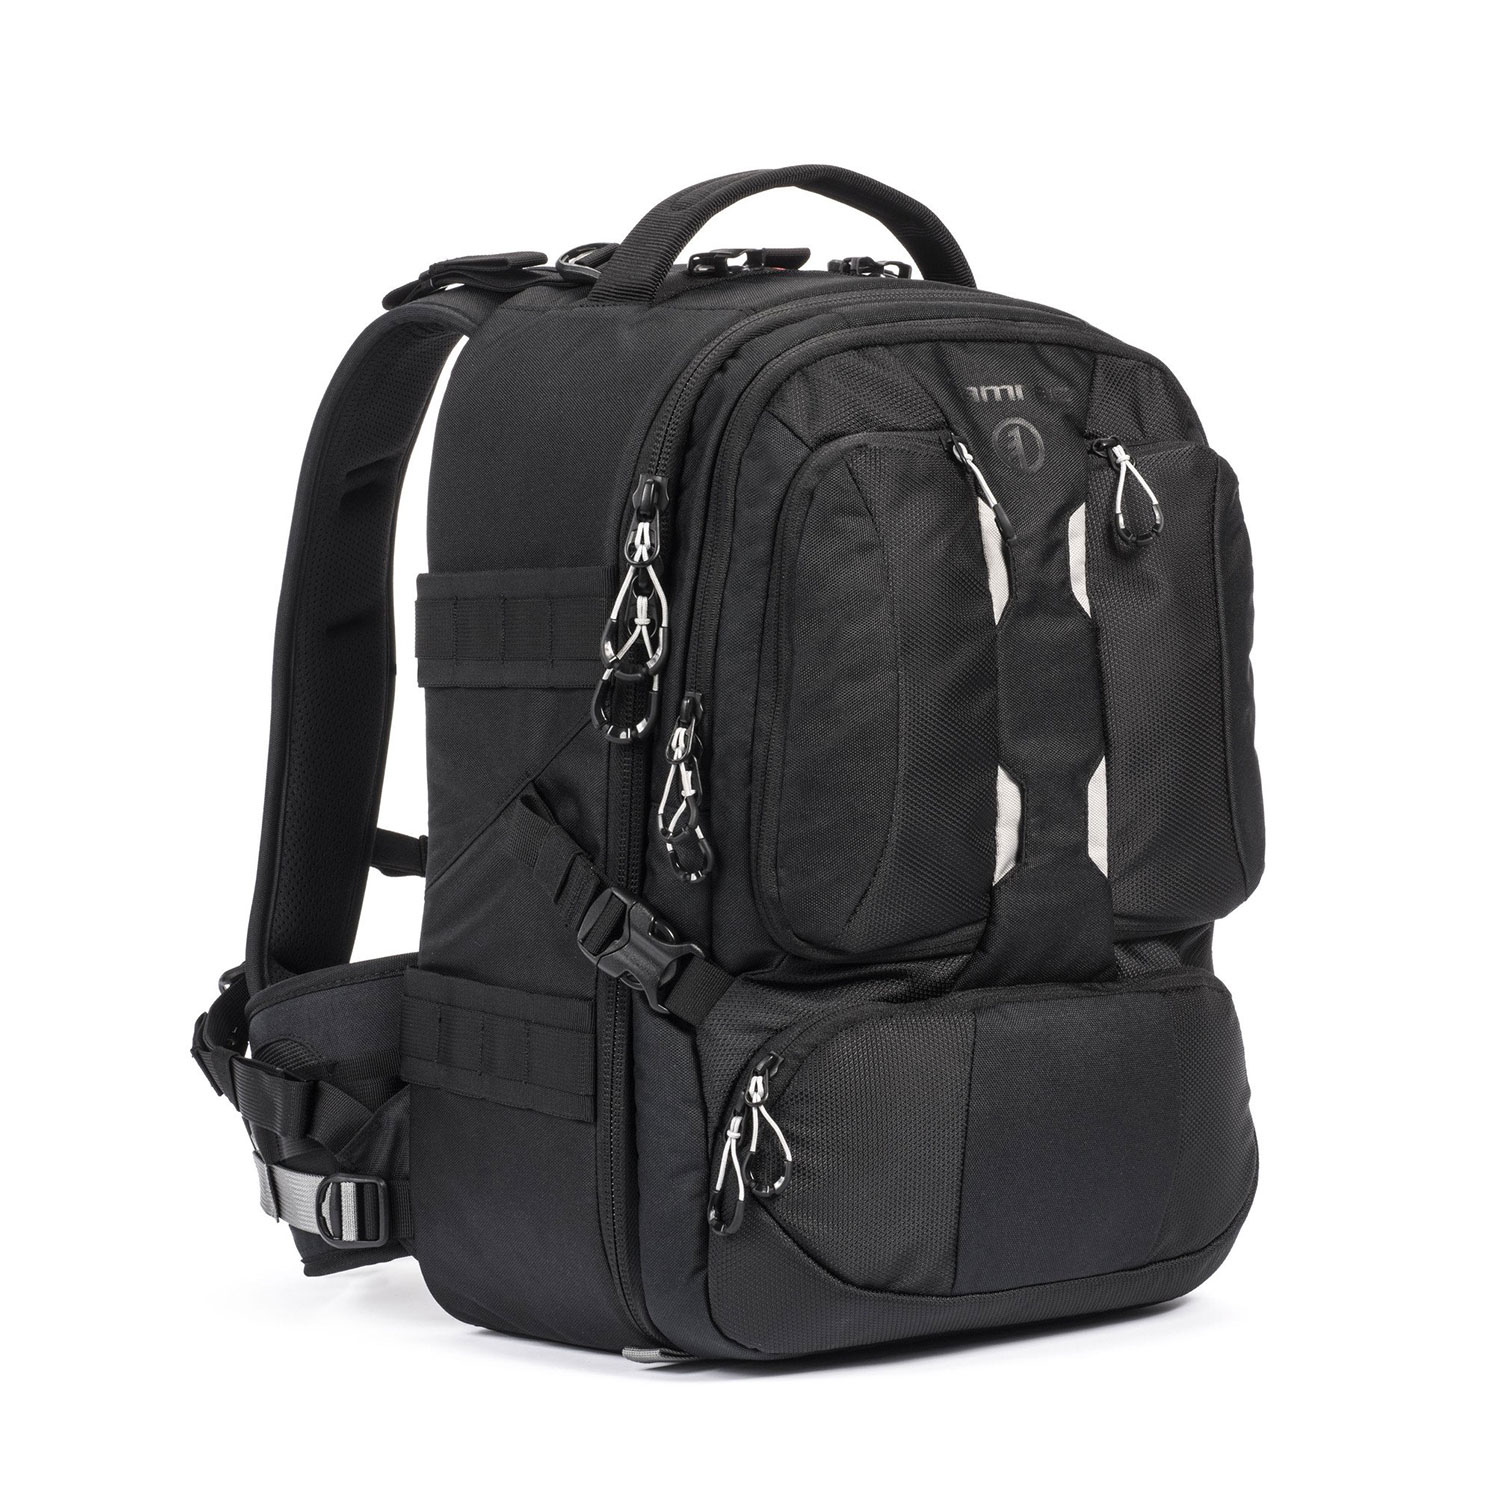 Review Tamrac Anvil Pro Series Backpacks 2